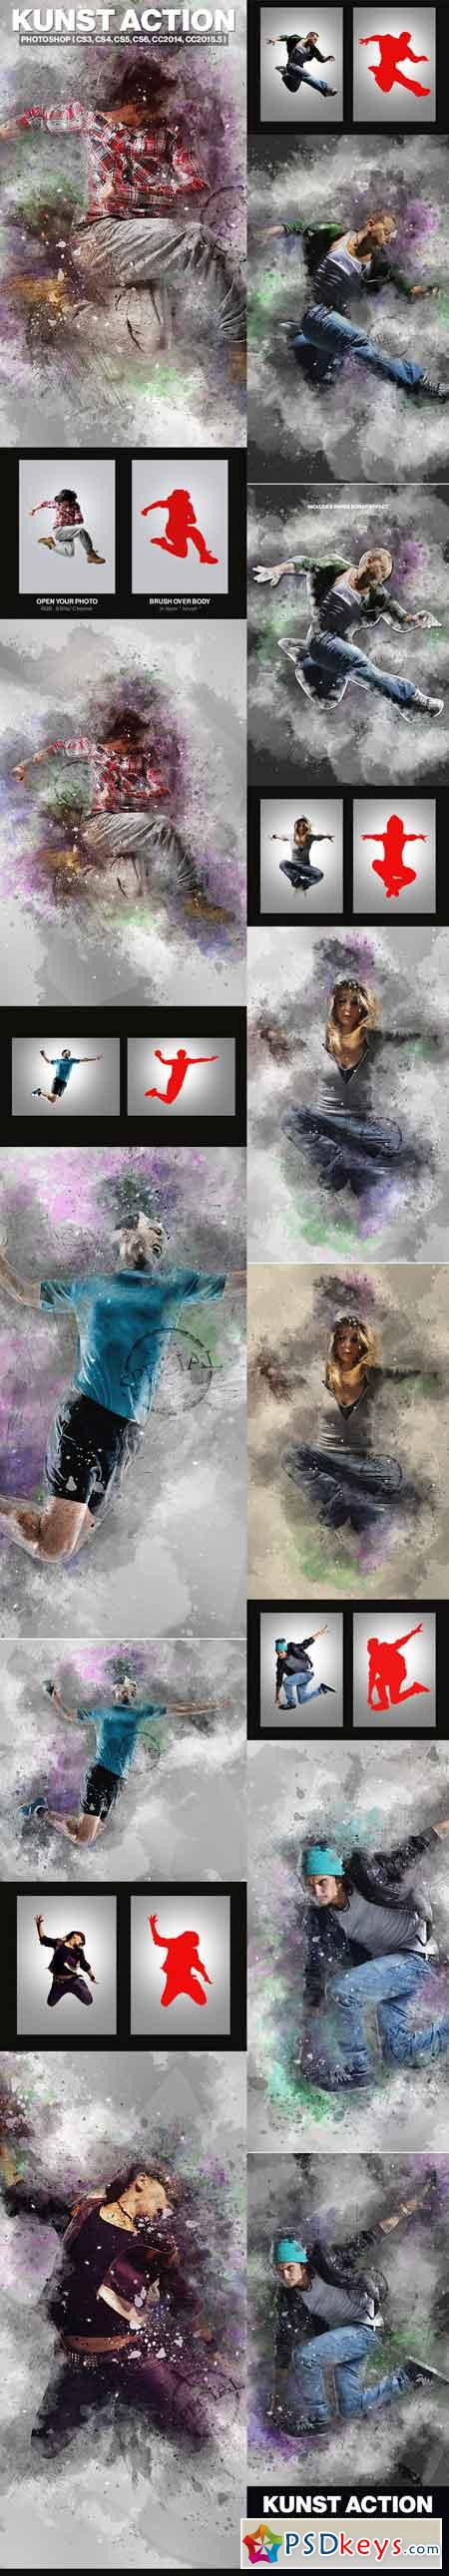 Kunst Photoshop Action 18042886